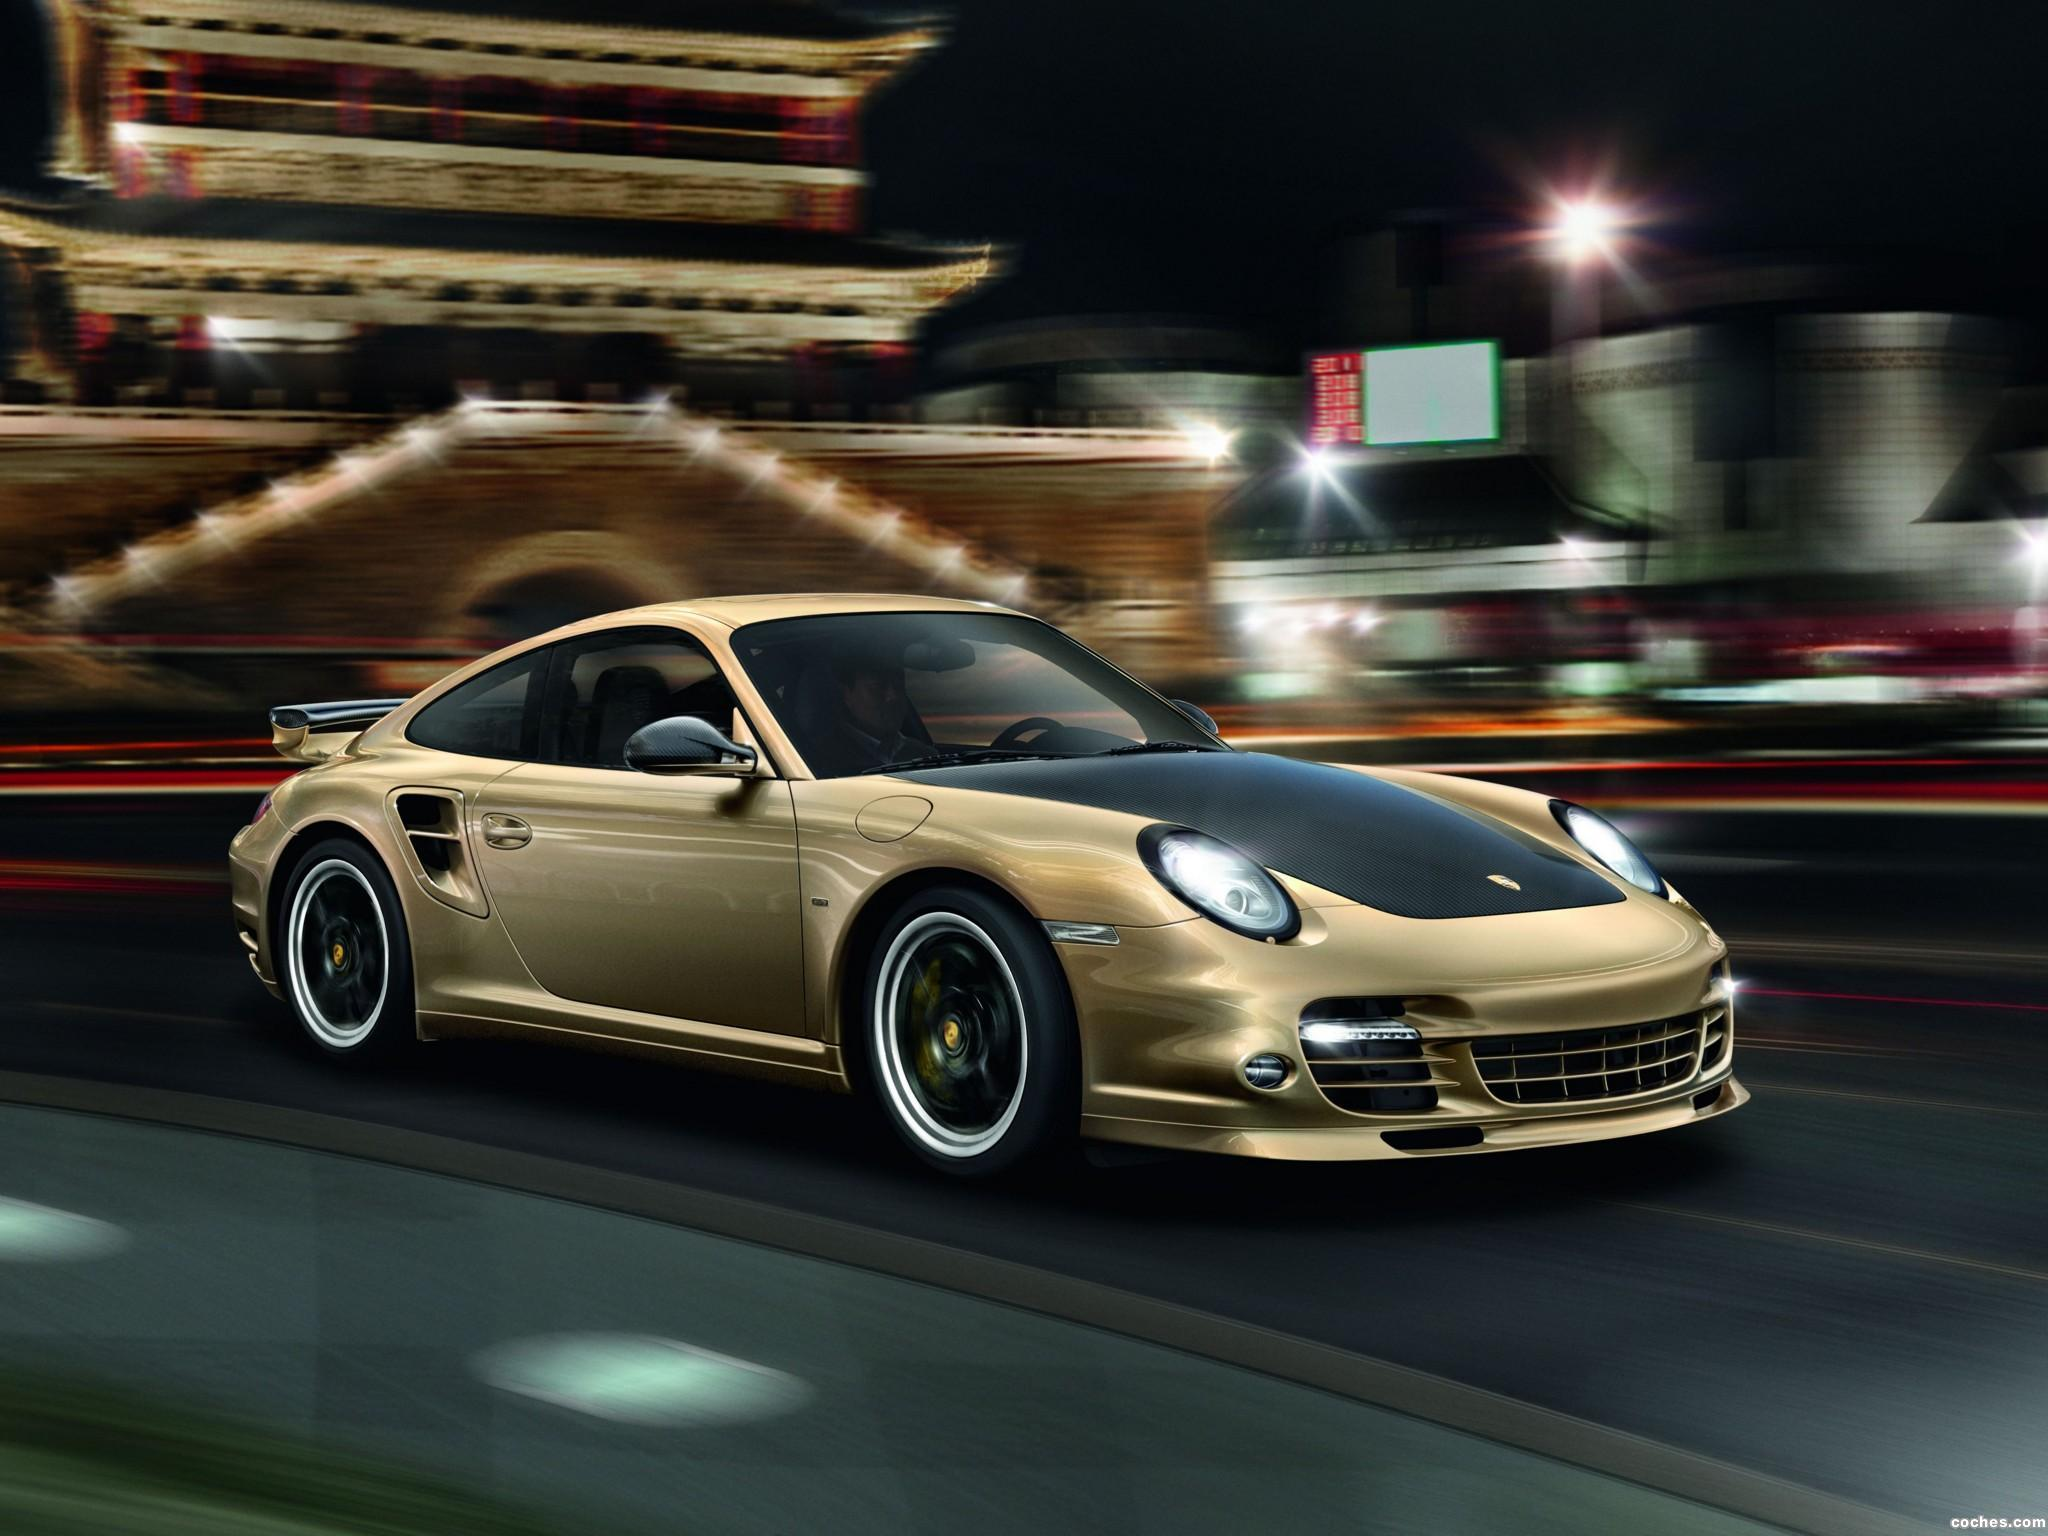 Foto 0 de Porsche 911 Turbo S 997 10 Aniversario en China 2011